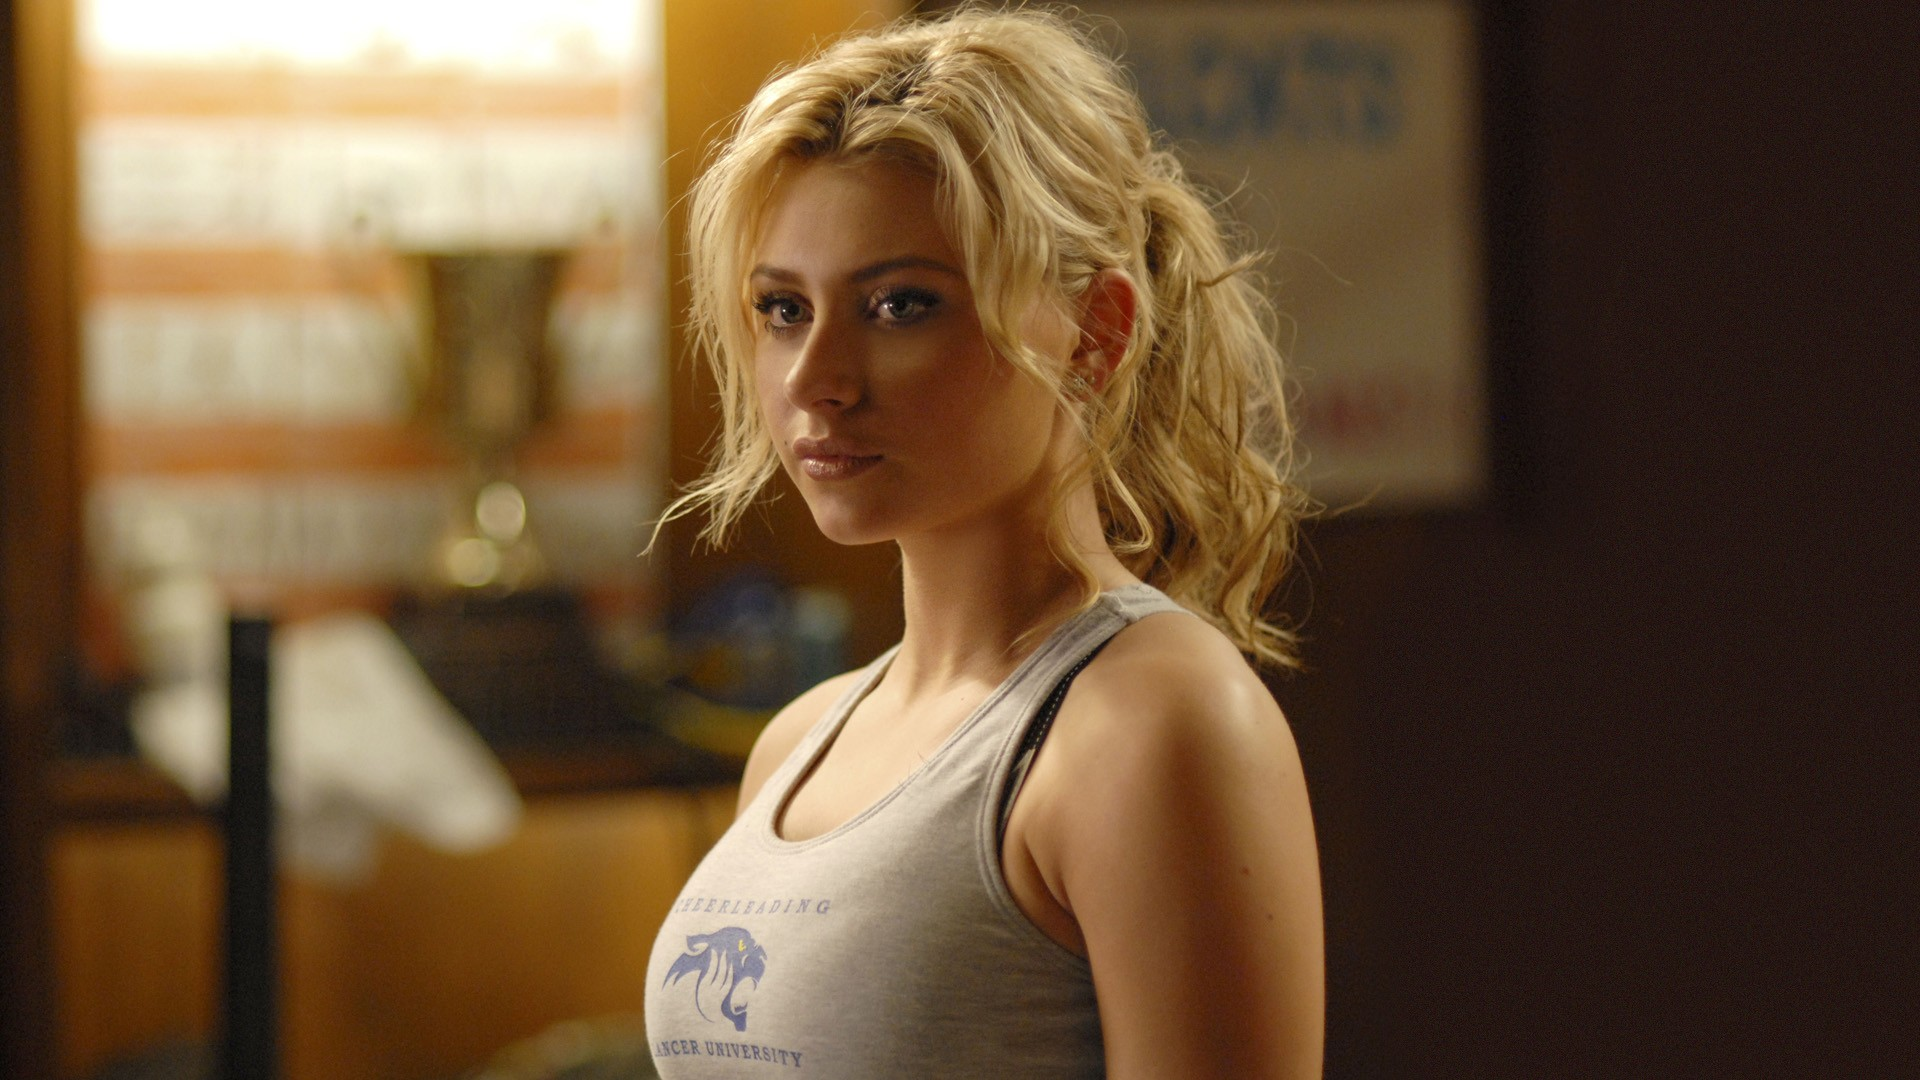 Aj michalka and hellcats hd wallpapers images pictures - Blondes Women Actress Celebrity Singers Alyson Michalka